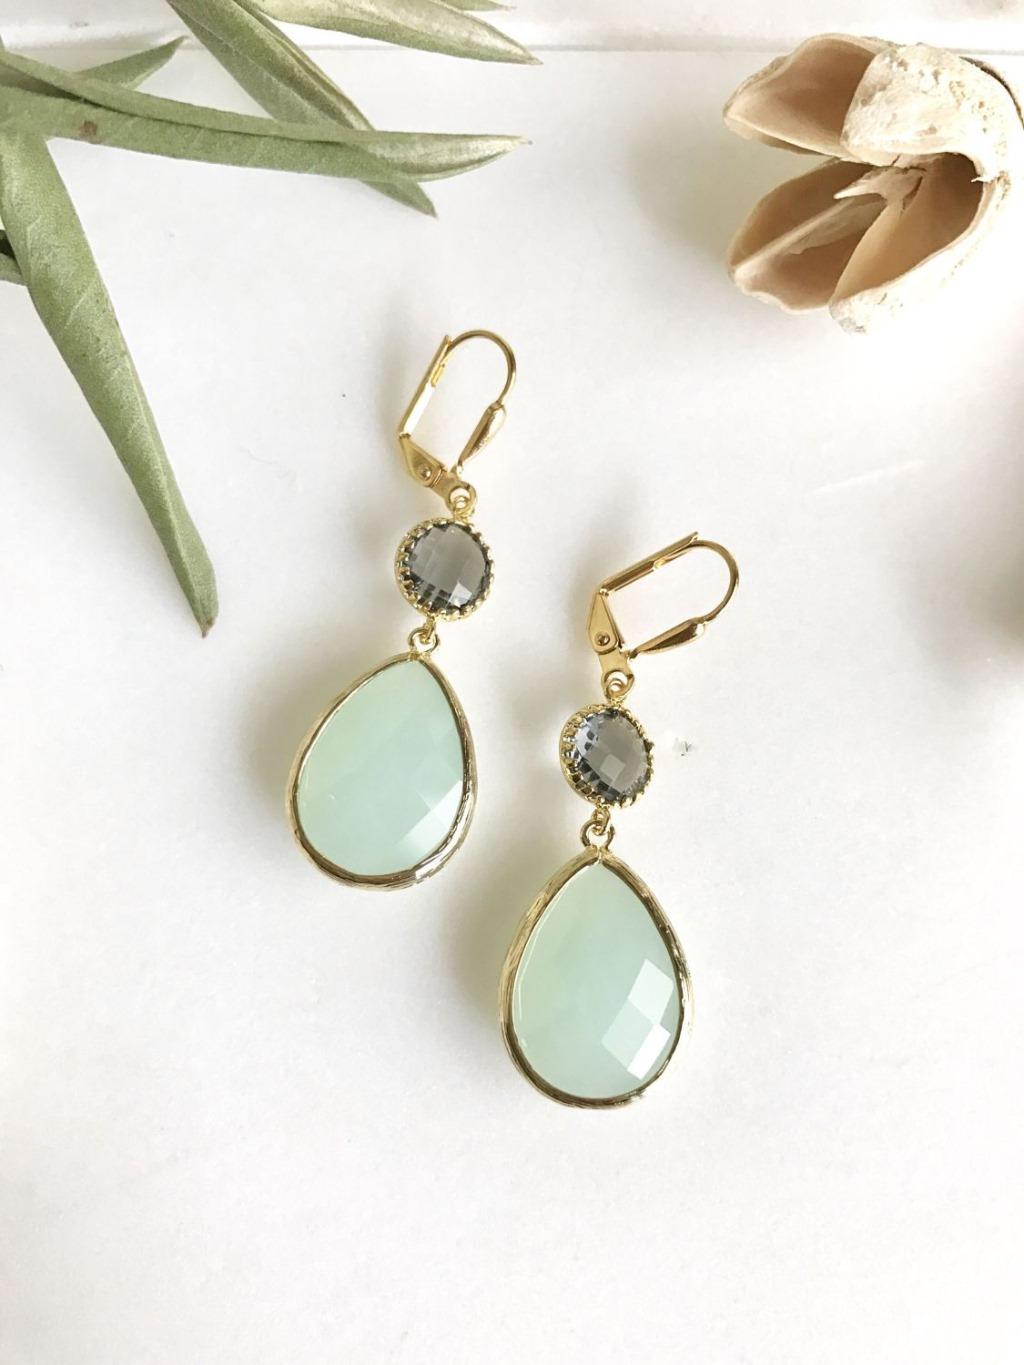 The stone teardrops are 21mm long. The earrings are about 2 long including the gold plated leverbacks.